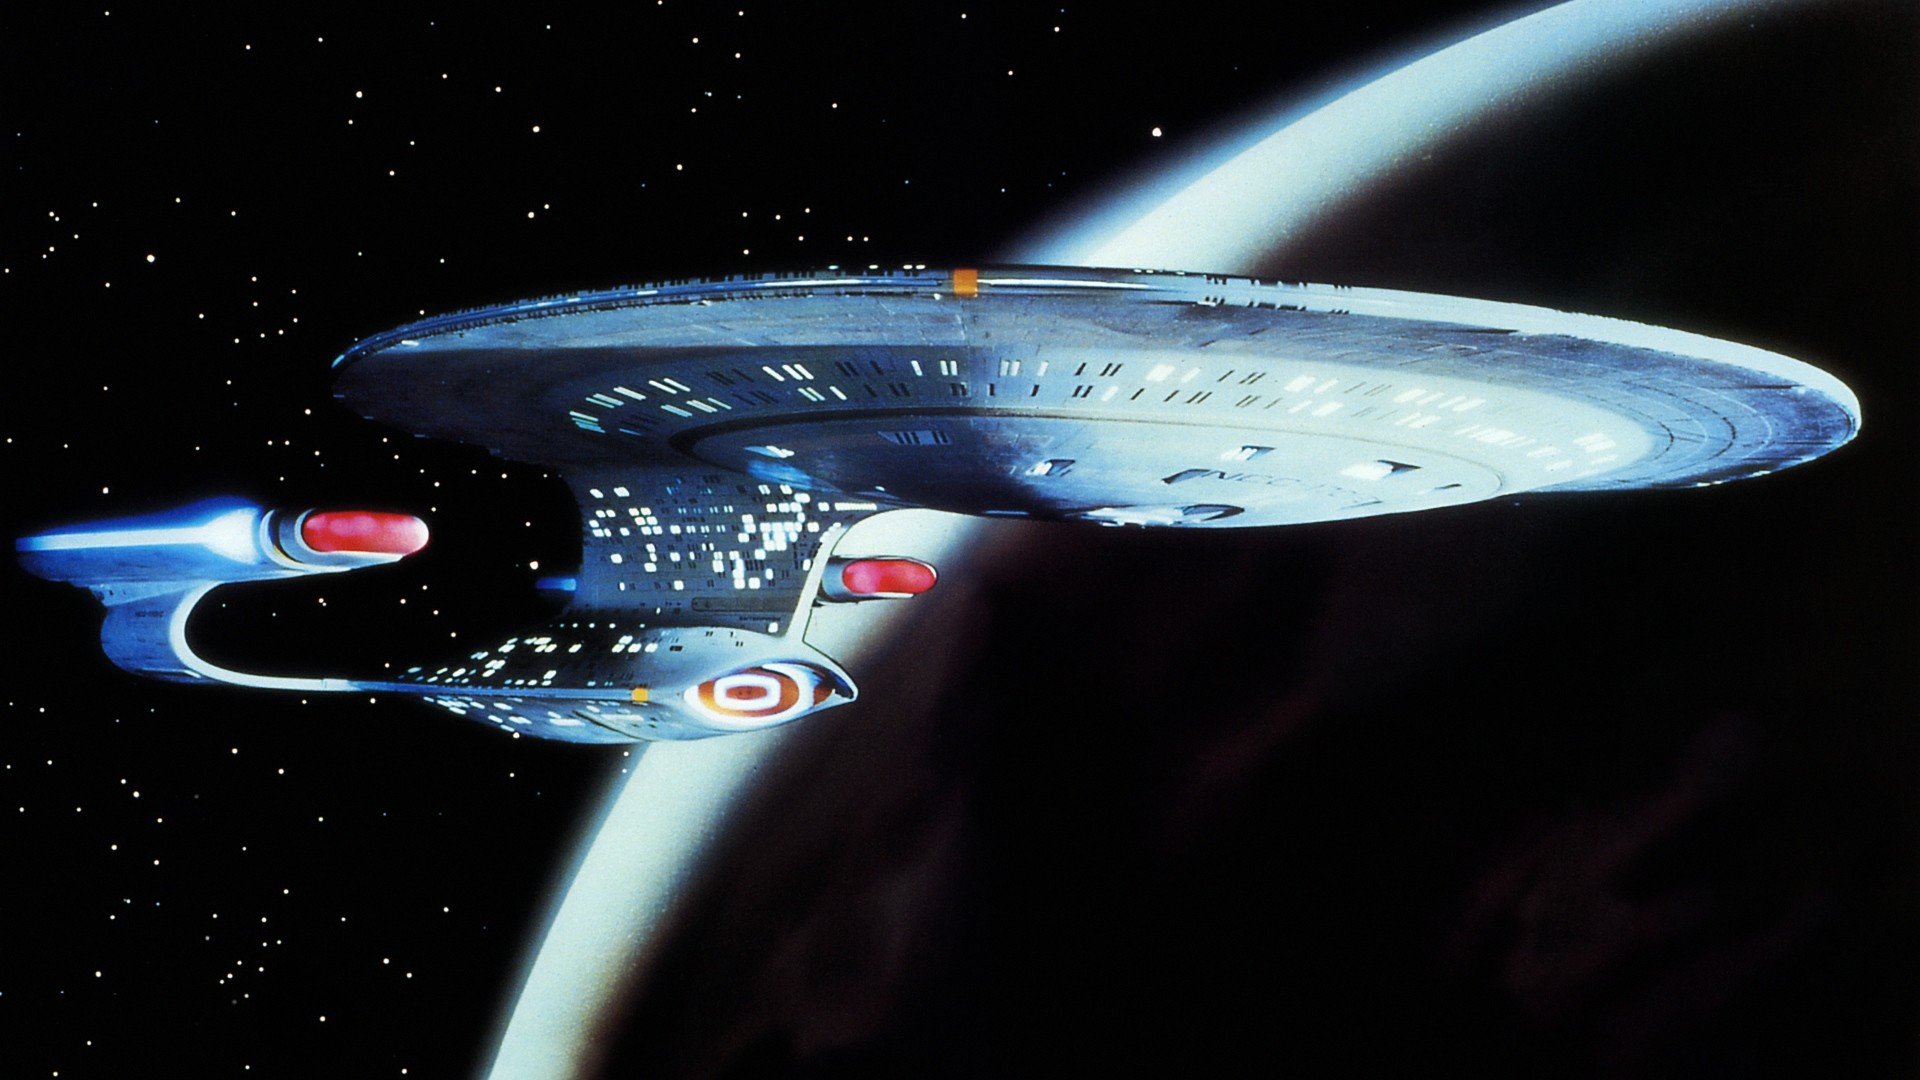 1920x1080 wallpaper star trek the next generation backgrounds download high definiton tablet 1920×1080 Wallpaper